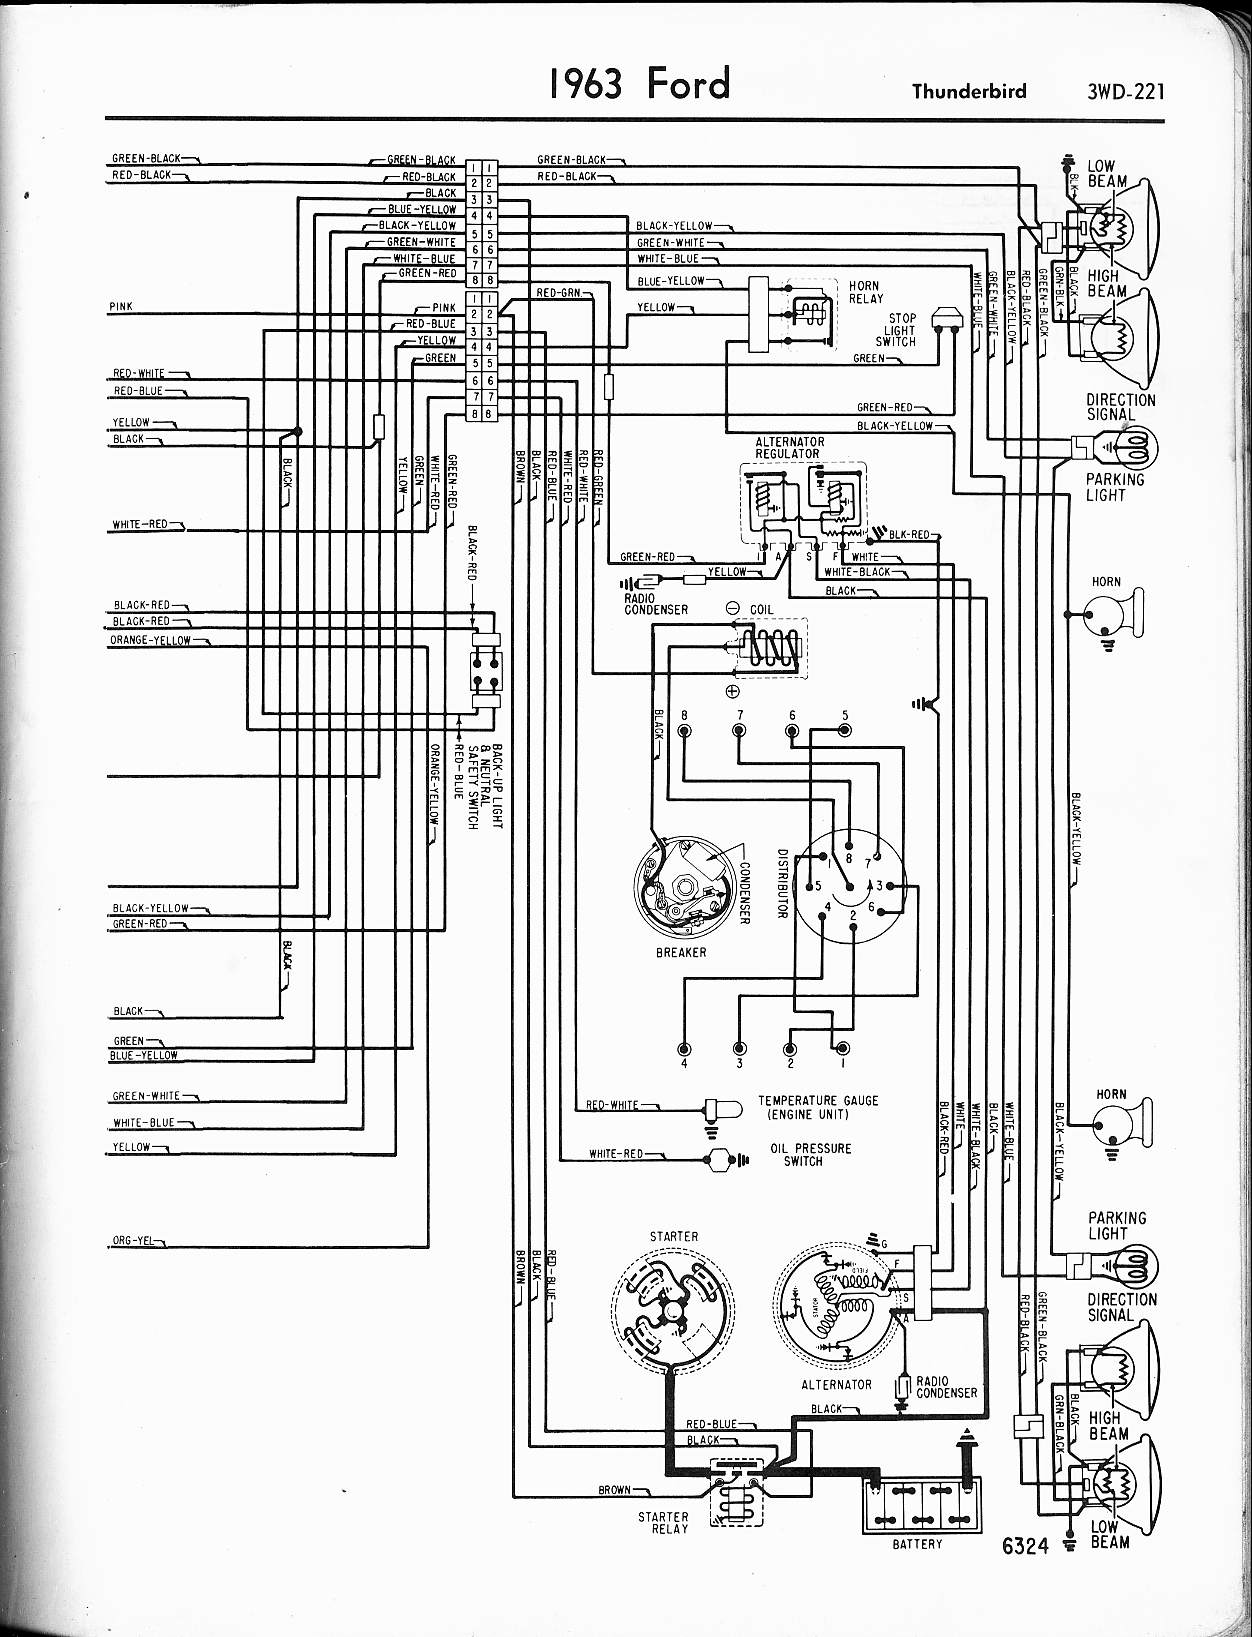 1968 Ford Steering Column Wiring Diagram Schematics Data Camaro 1967 Truck Experts Of Rh Evilcloud Co Uk Mustang F 250